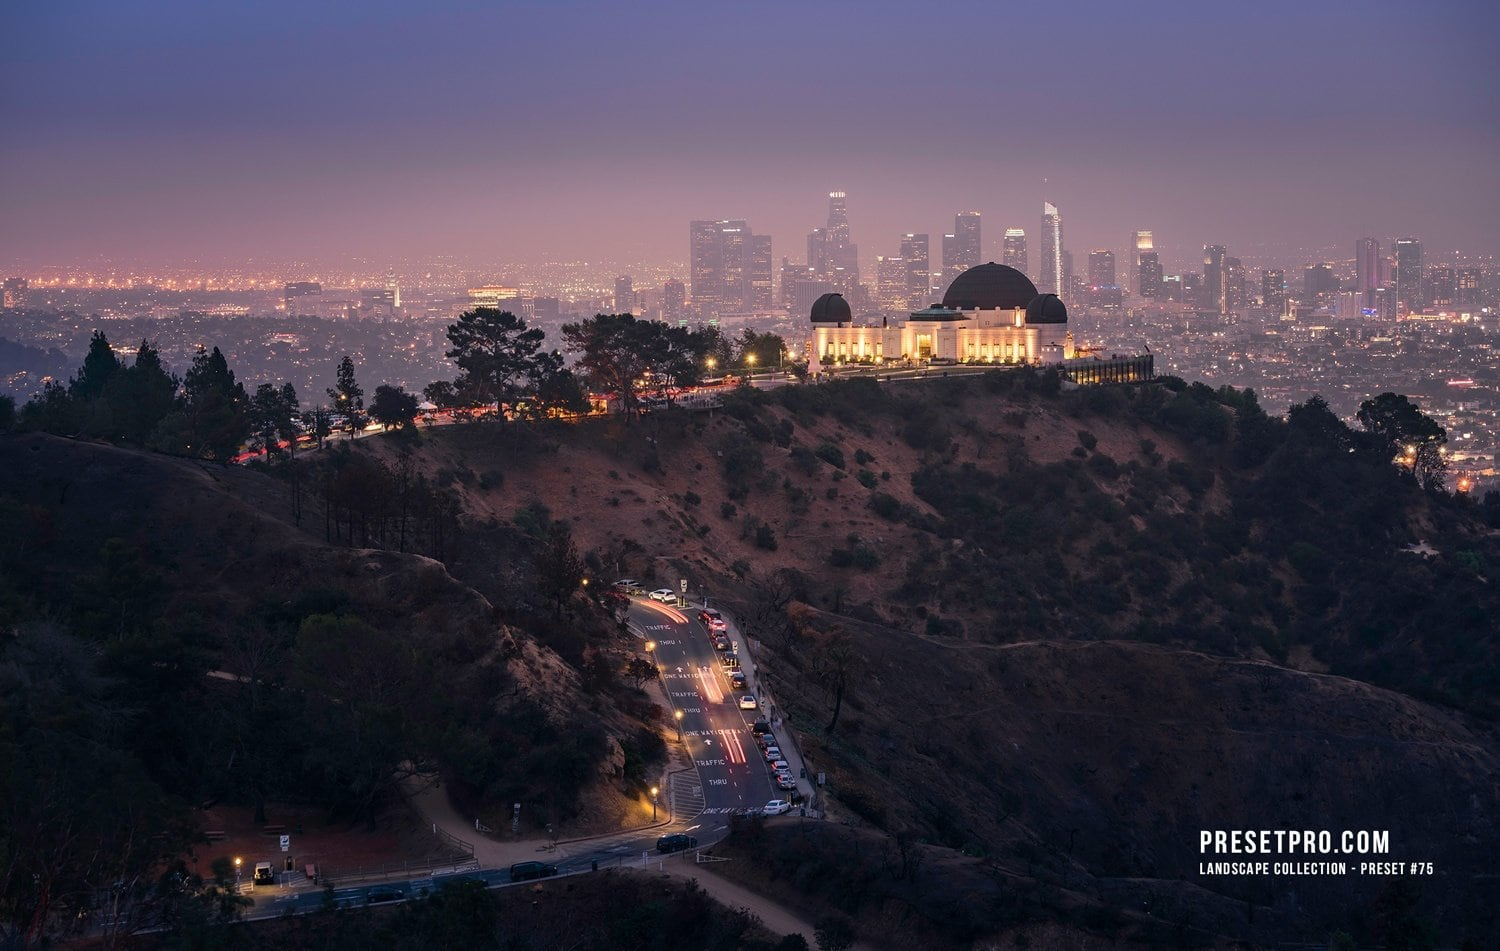 Creative Flow Lightroom Presets and Profiles Hollywood Hills C010-P75